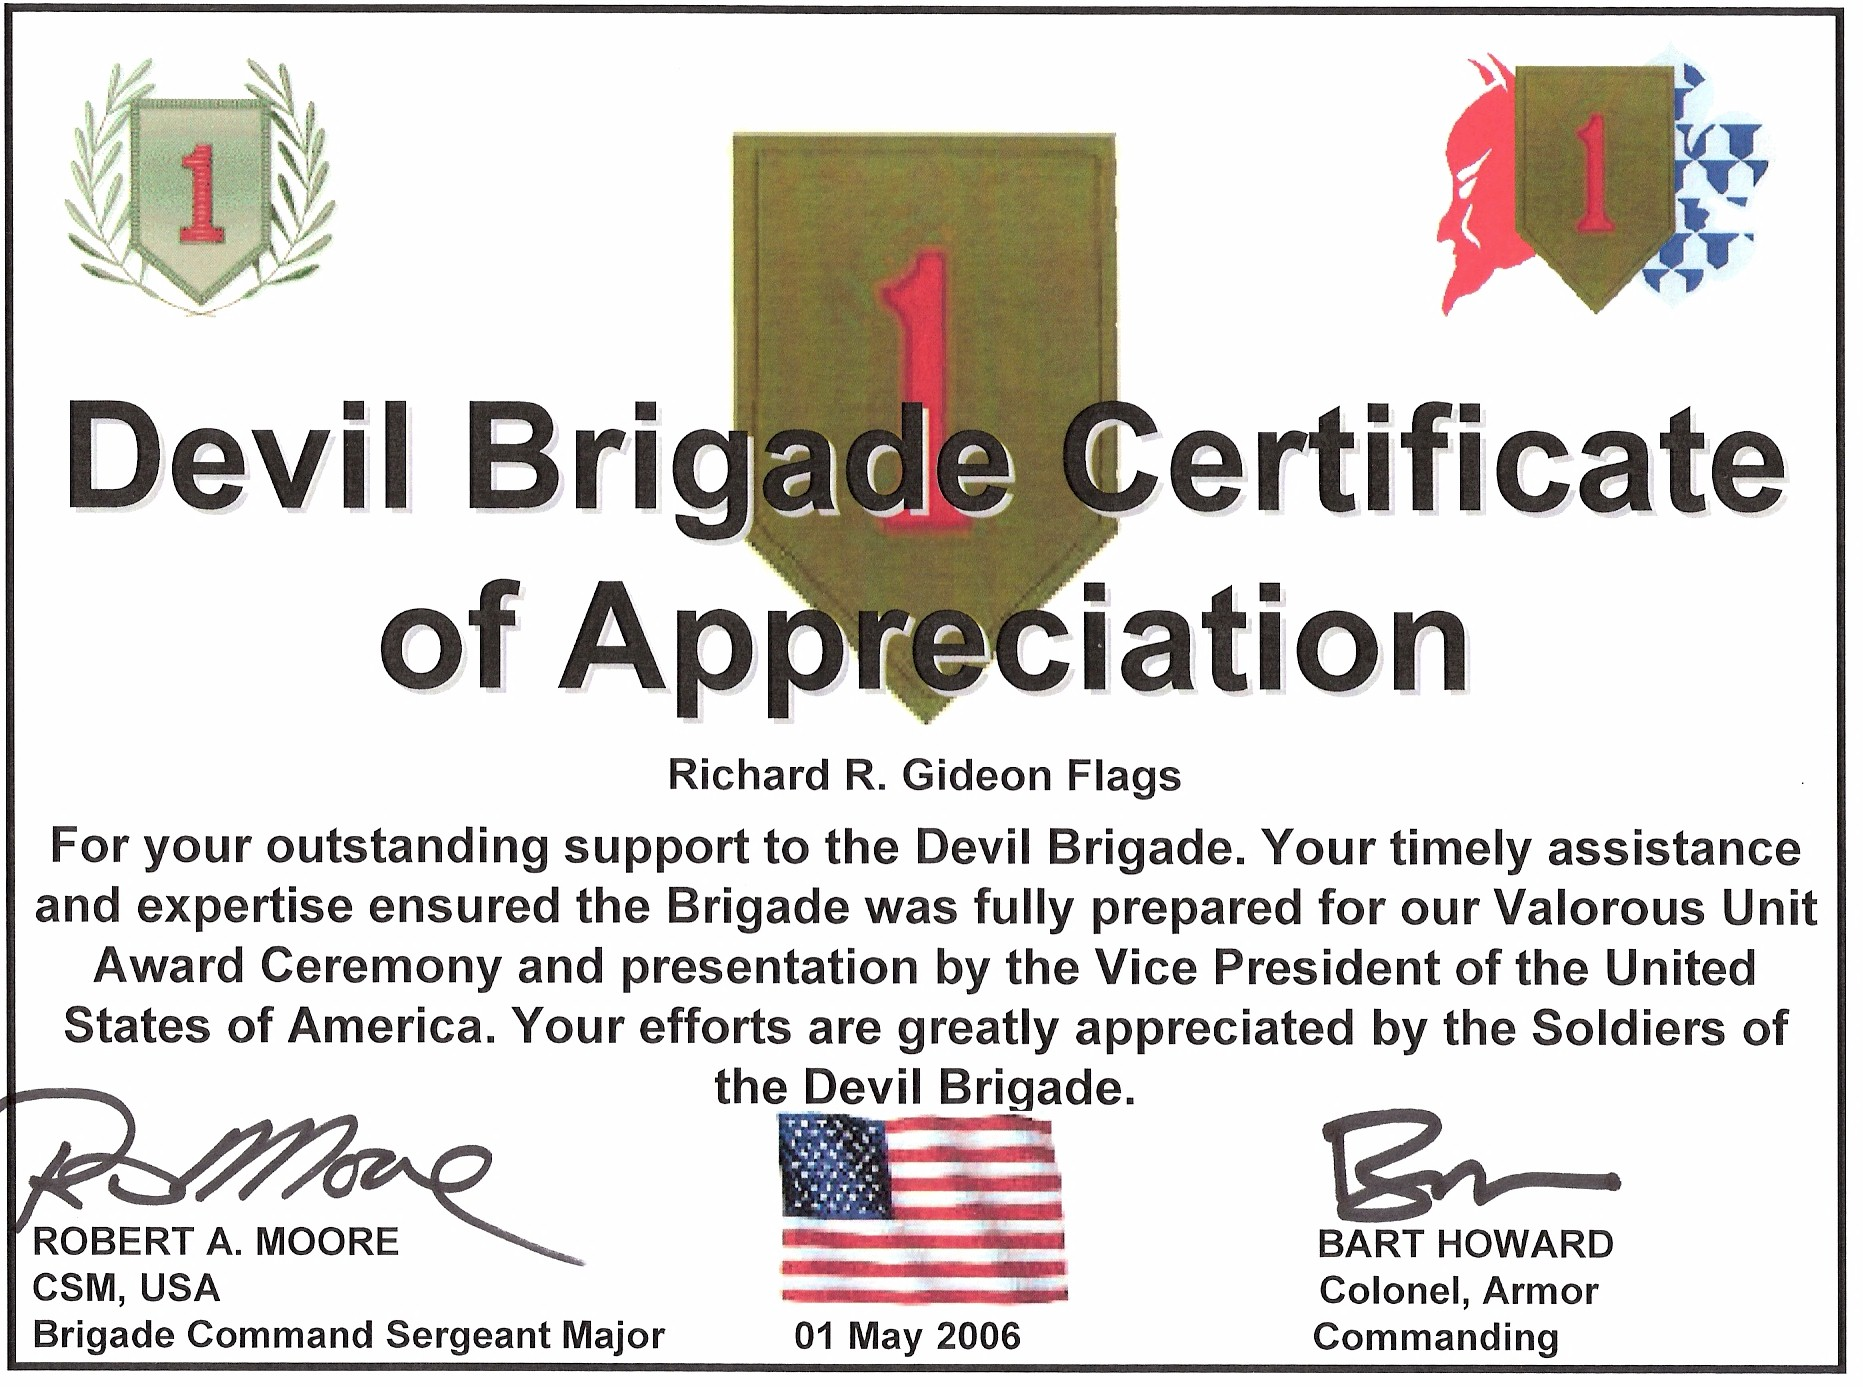 Army Certificate Of Appreciation bol template samples of – Army Certificate of Appreciation